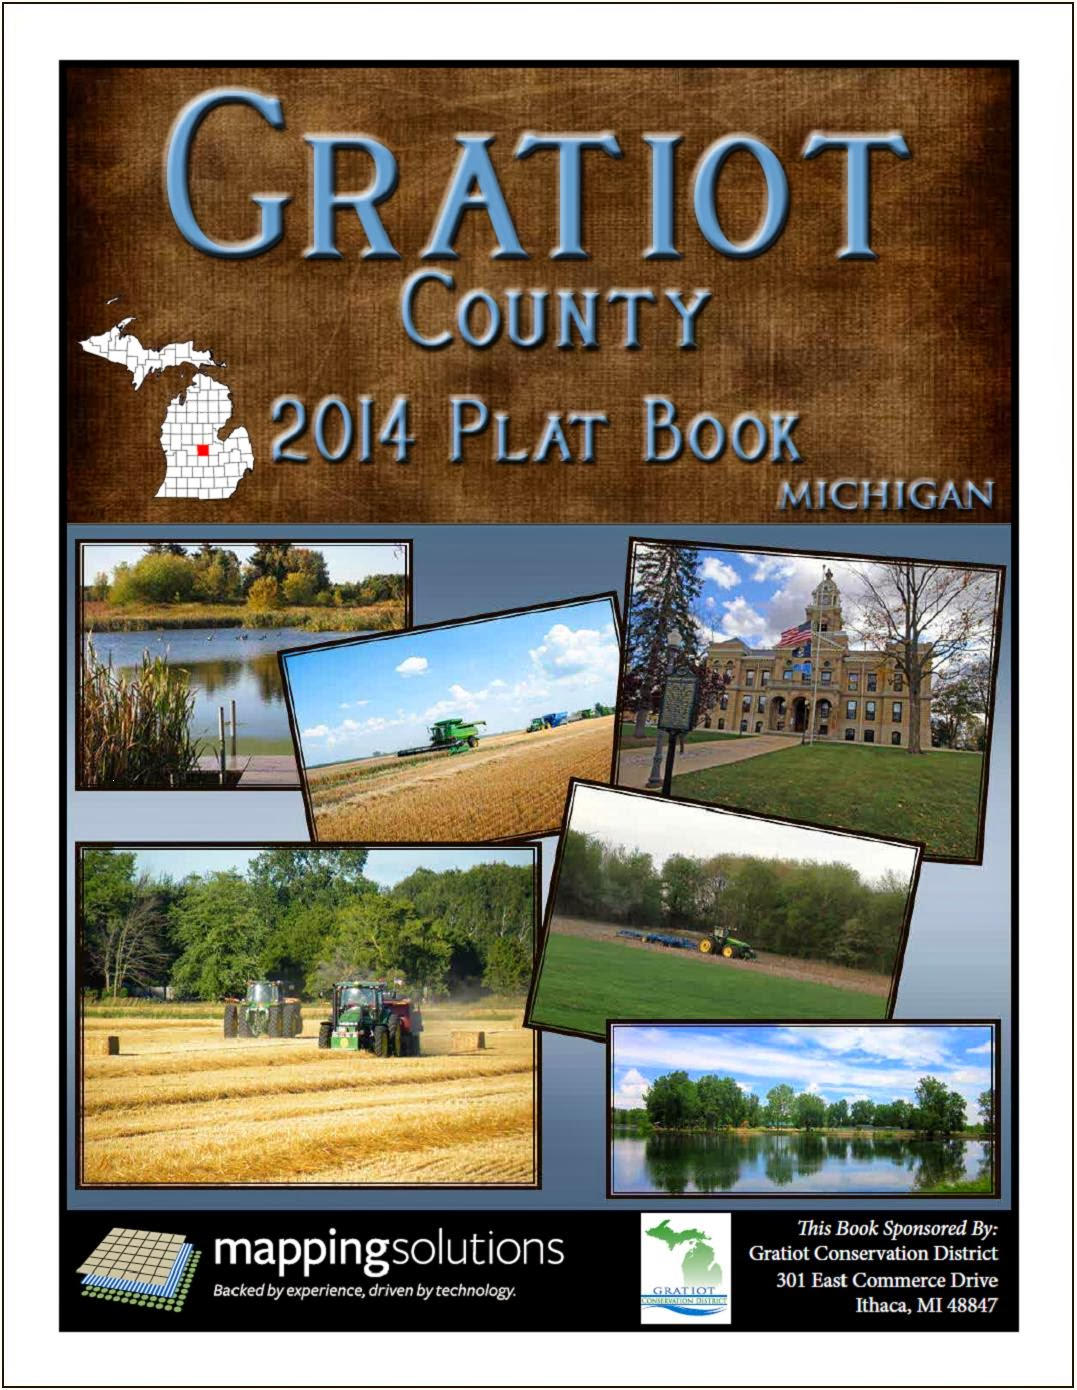 Michigan gratiot county breckenridge - Gratiot Conservation District Now Has The 2014 Gratiot County Plat Book Available For Sale